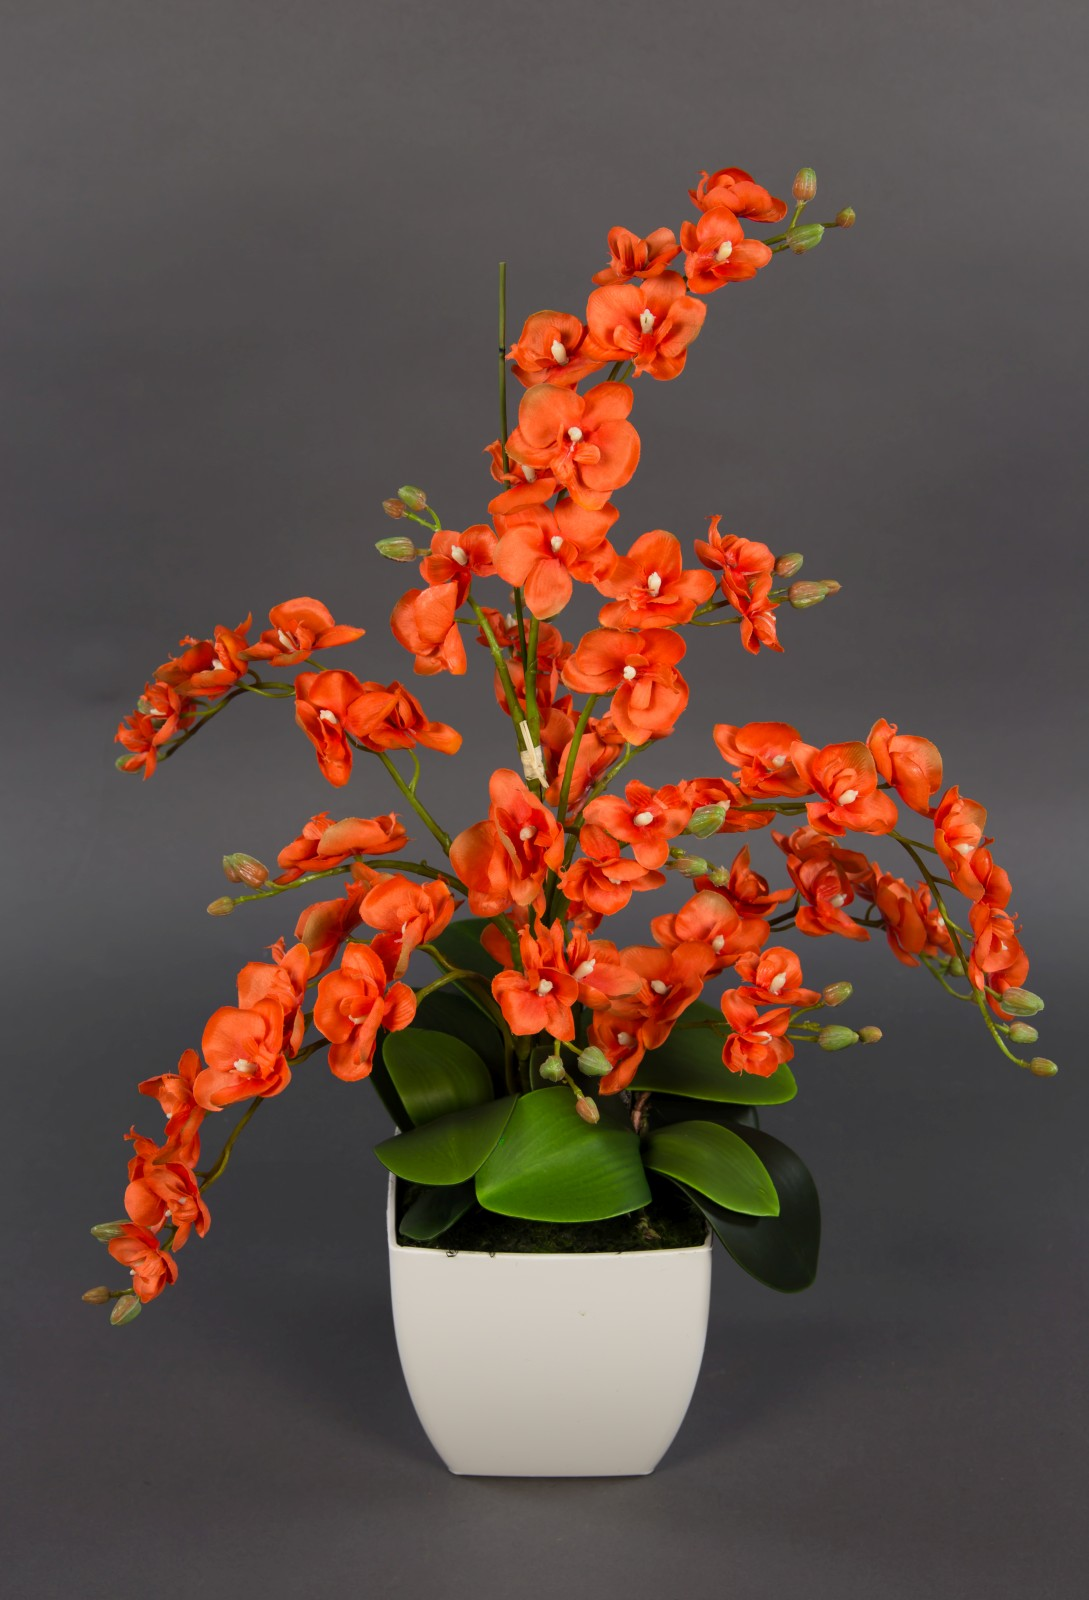 Orchideen arrangement orange im wei en dekotopf pm kunstblume k nstliche orchidee kunstpflanze - Orchideen arrangement ...